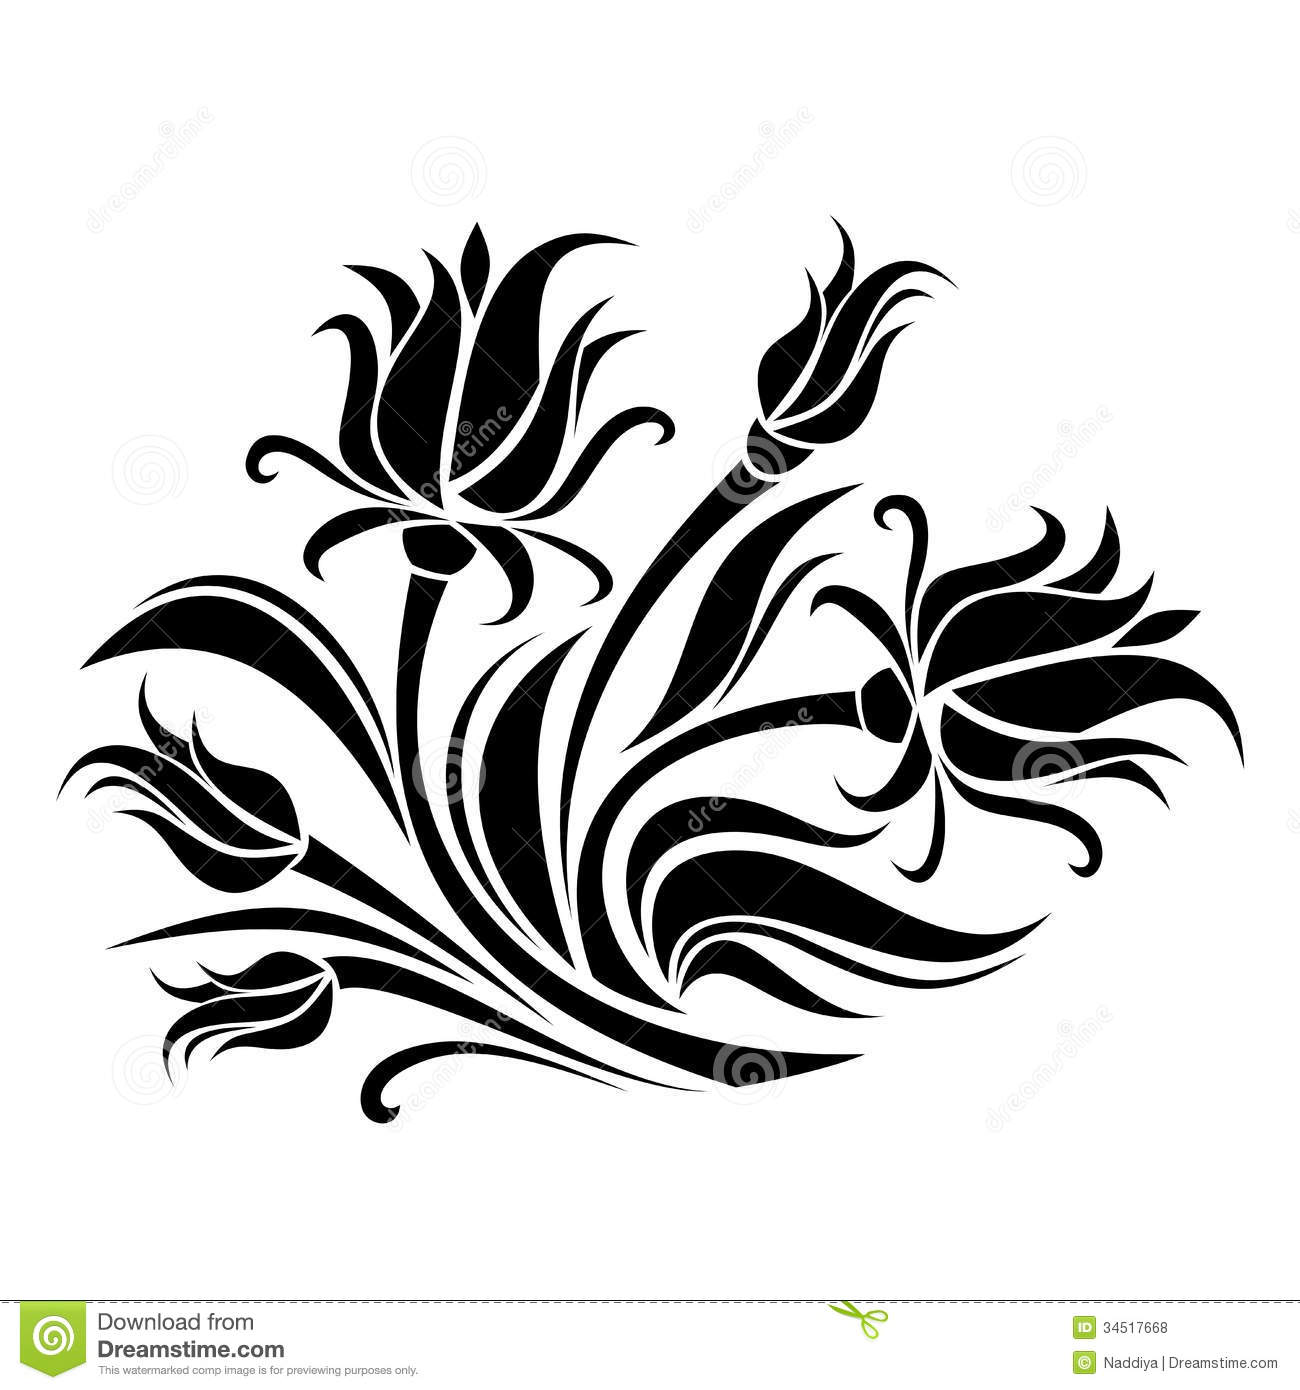 Black Flower And Bud Pattern Royalty Free Stock Photos: Black Silhouette Of Flowers. Stock Vector